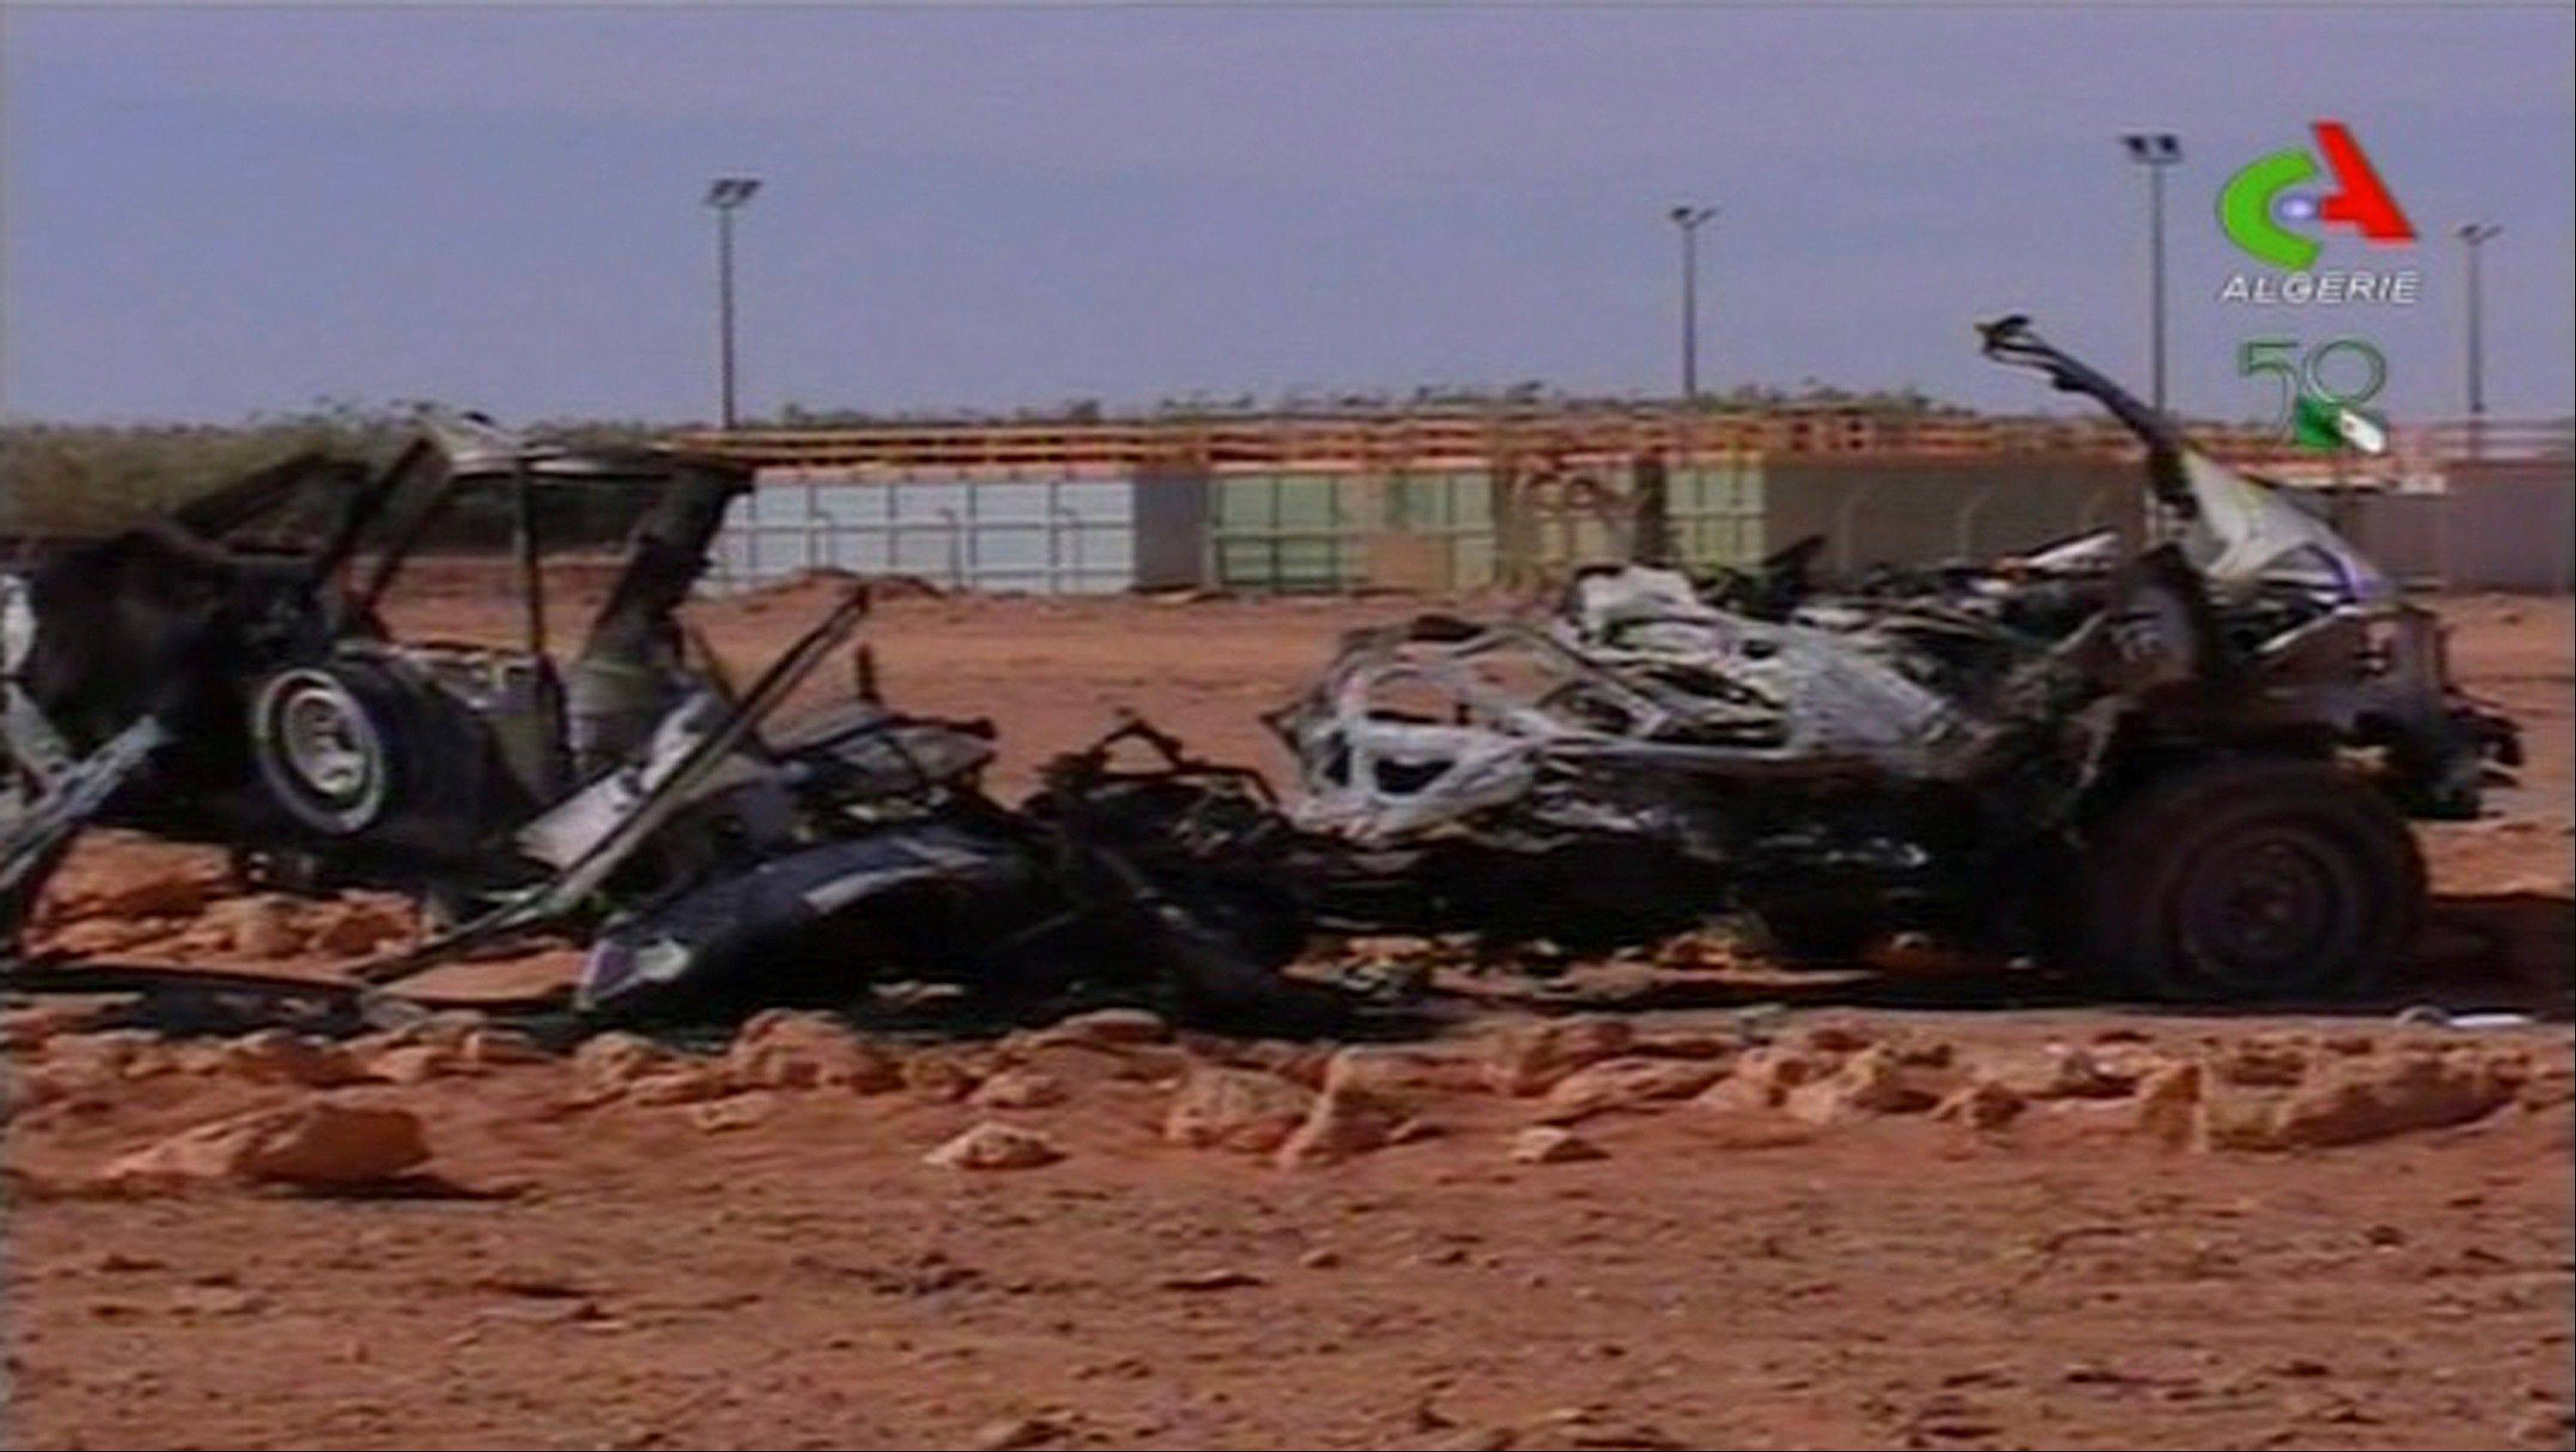 This image taken from Algerian TV broadcast on Sunday shows what it said was the aftermath of the hostage crisis at the remote Ain Amenas gas facility in Algeria. Algerian special forces stormed the plant on Saturday to end the four-day siege, moving in to thwart what government officials said was a plot by the Islamic extremists to blow up the complex and kill all their captives with mines sown throughout the site.